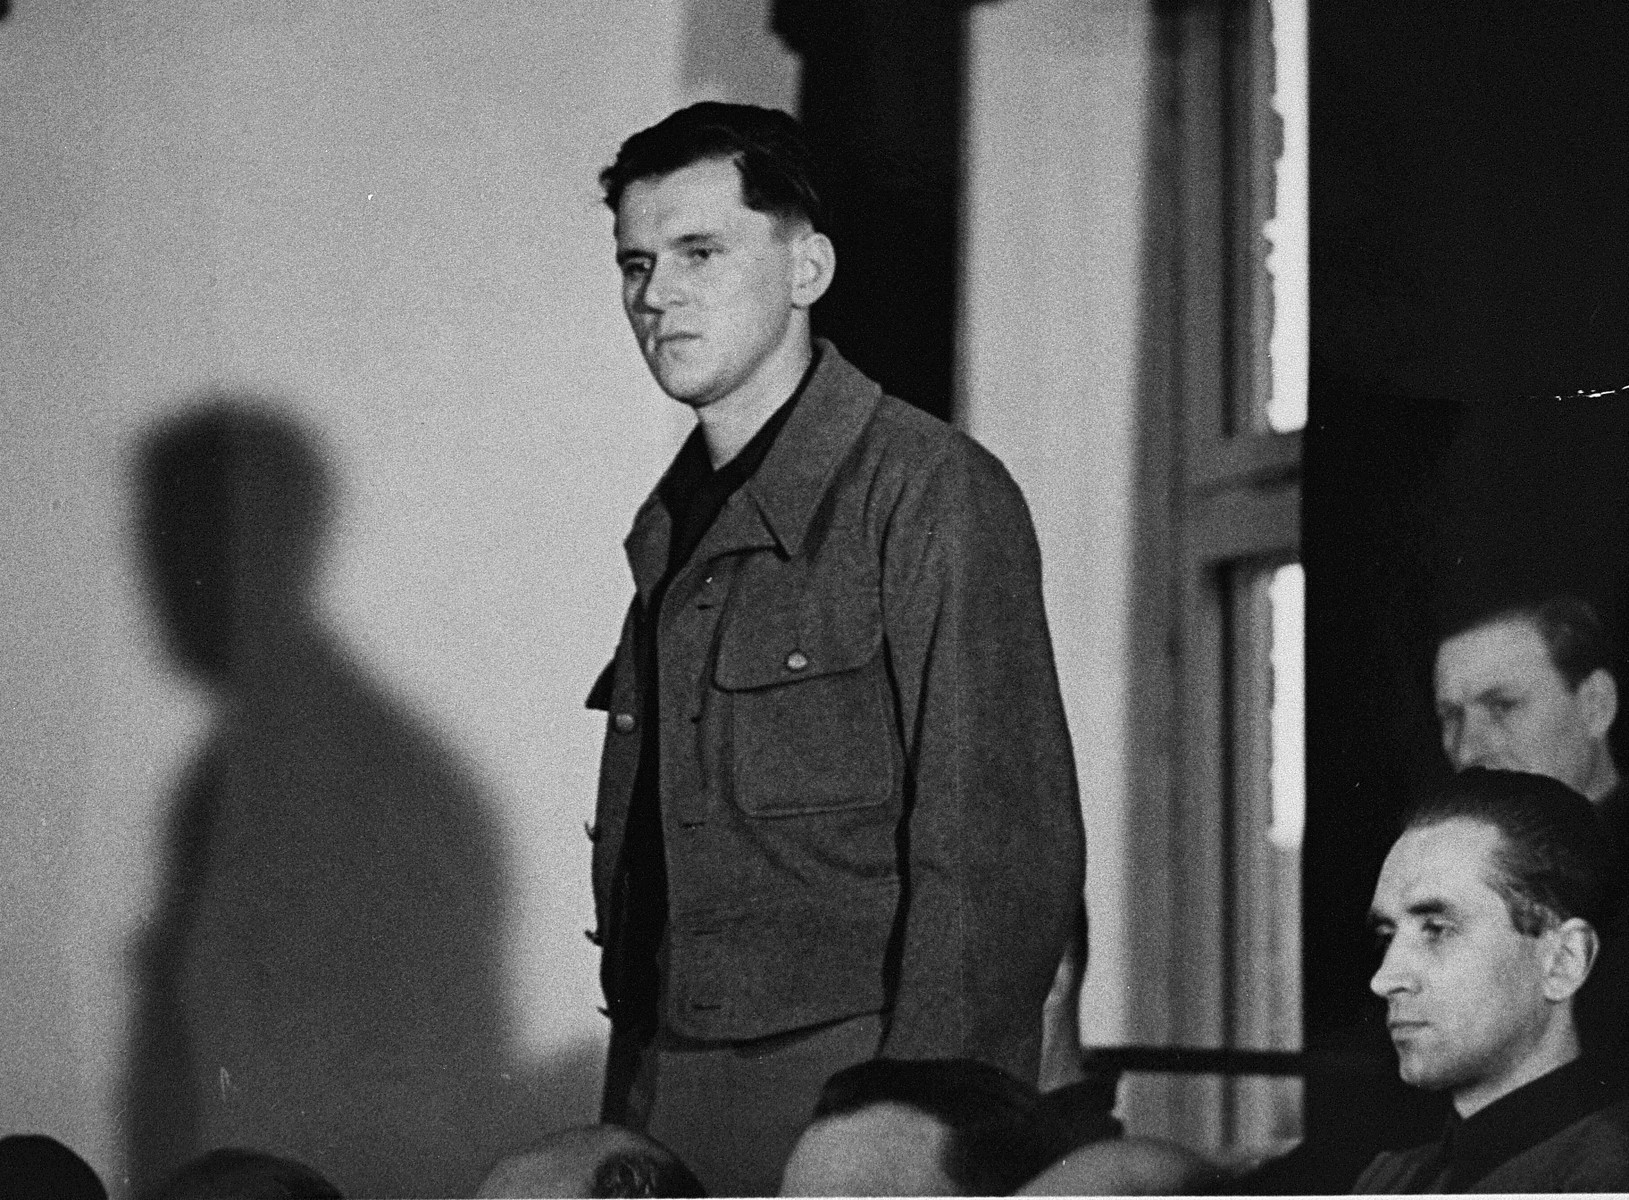 Willi Eckert stands in his place in the defendants' dock at the trial of 61 former camp personnel and prisoners from Mauthausen.